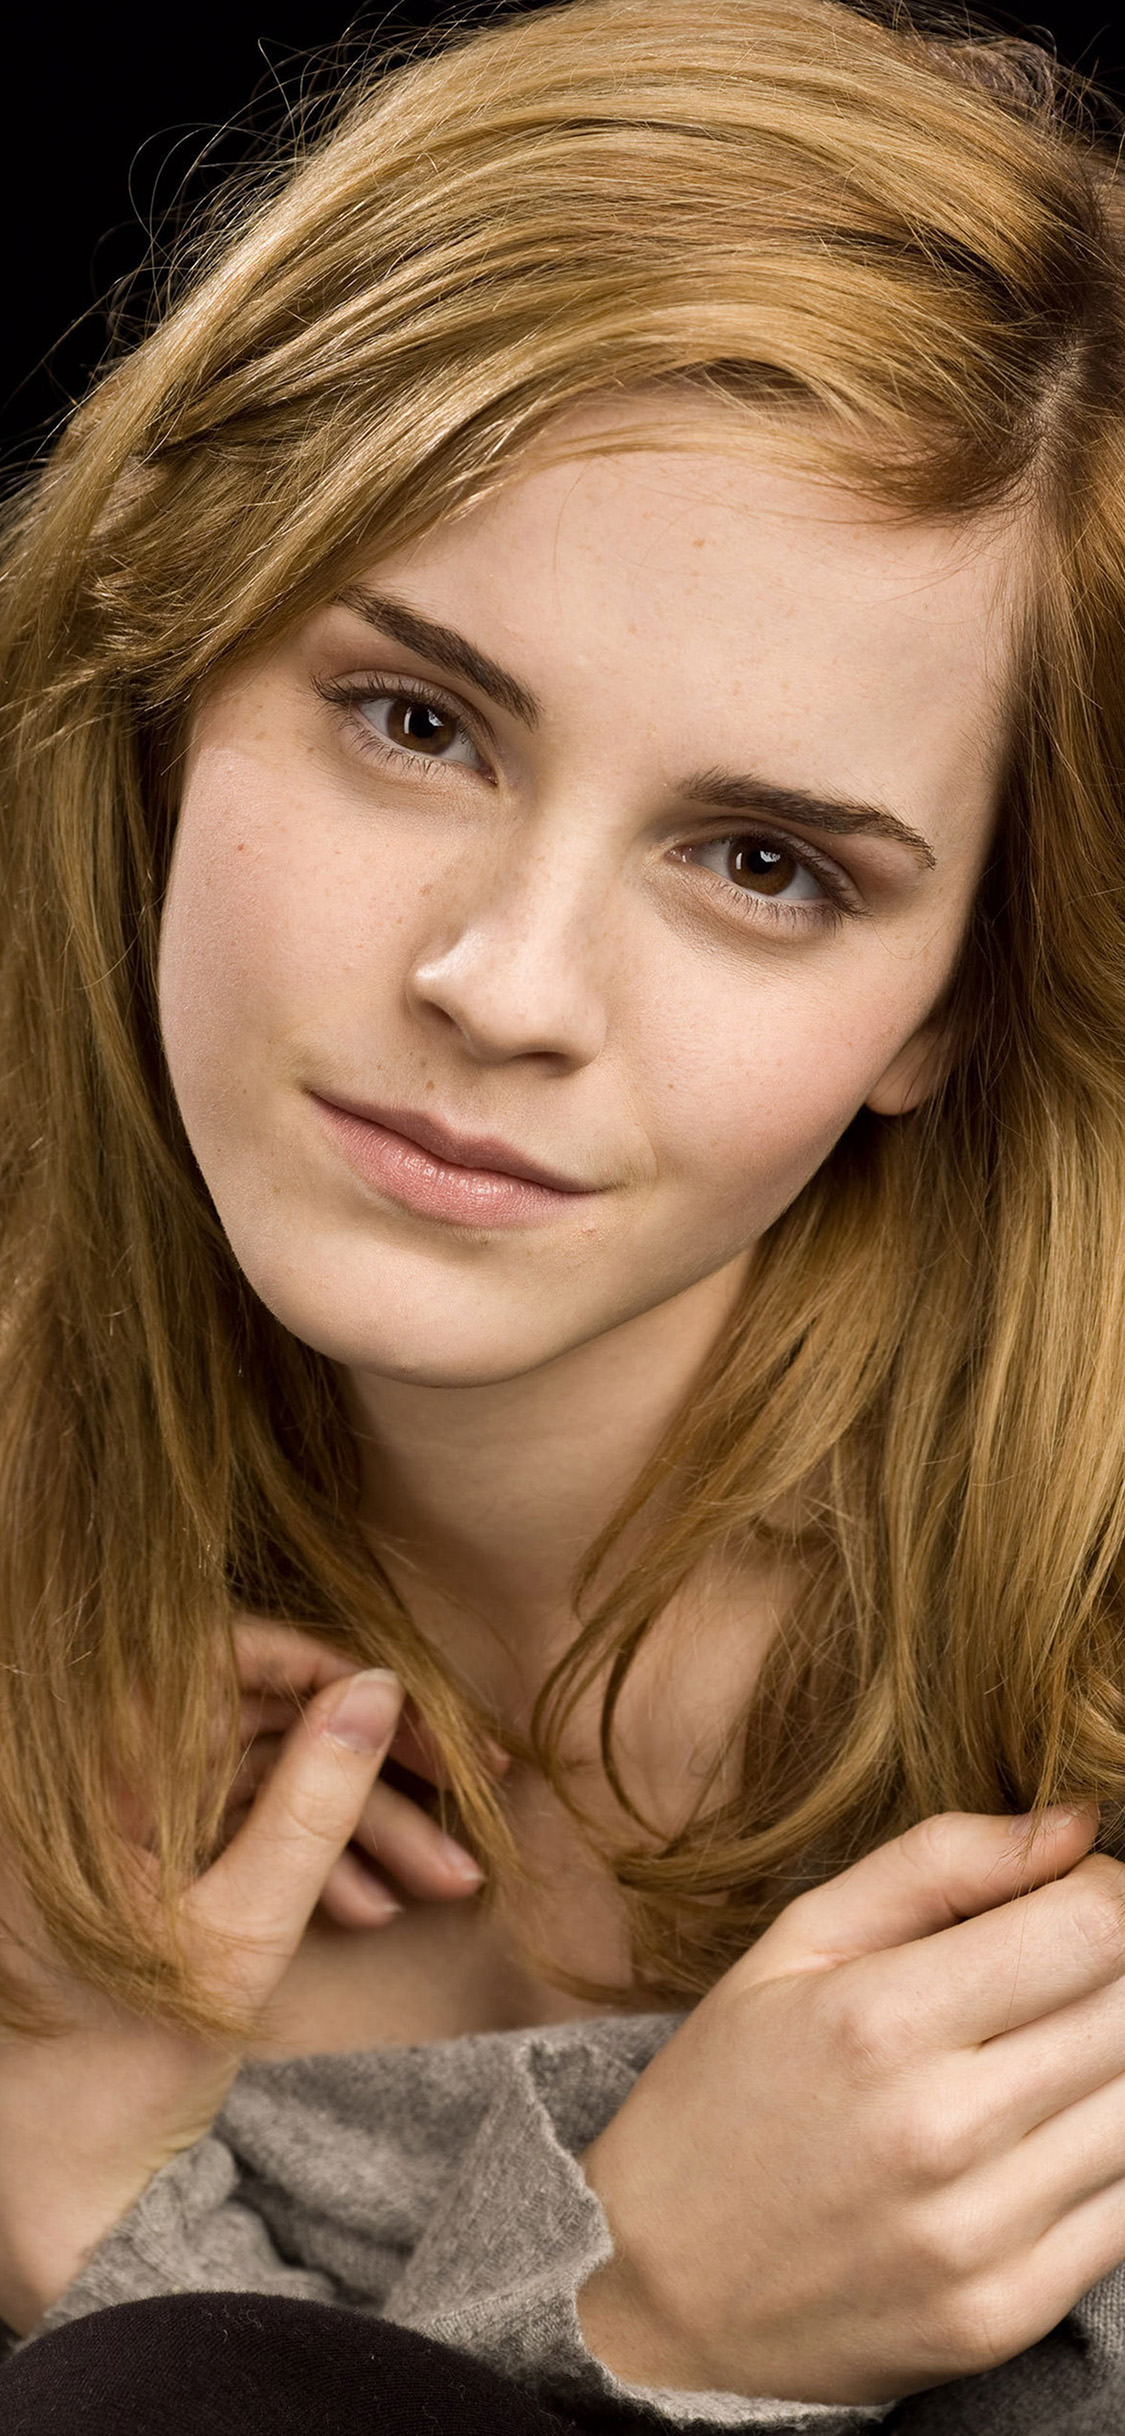 iPhonexpapers.com-Apple-iPhone-wallpaper-hr37-emma-watson-profile-girl-actress-film